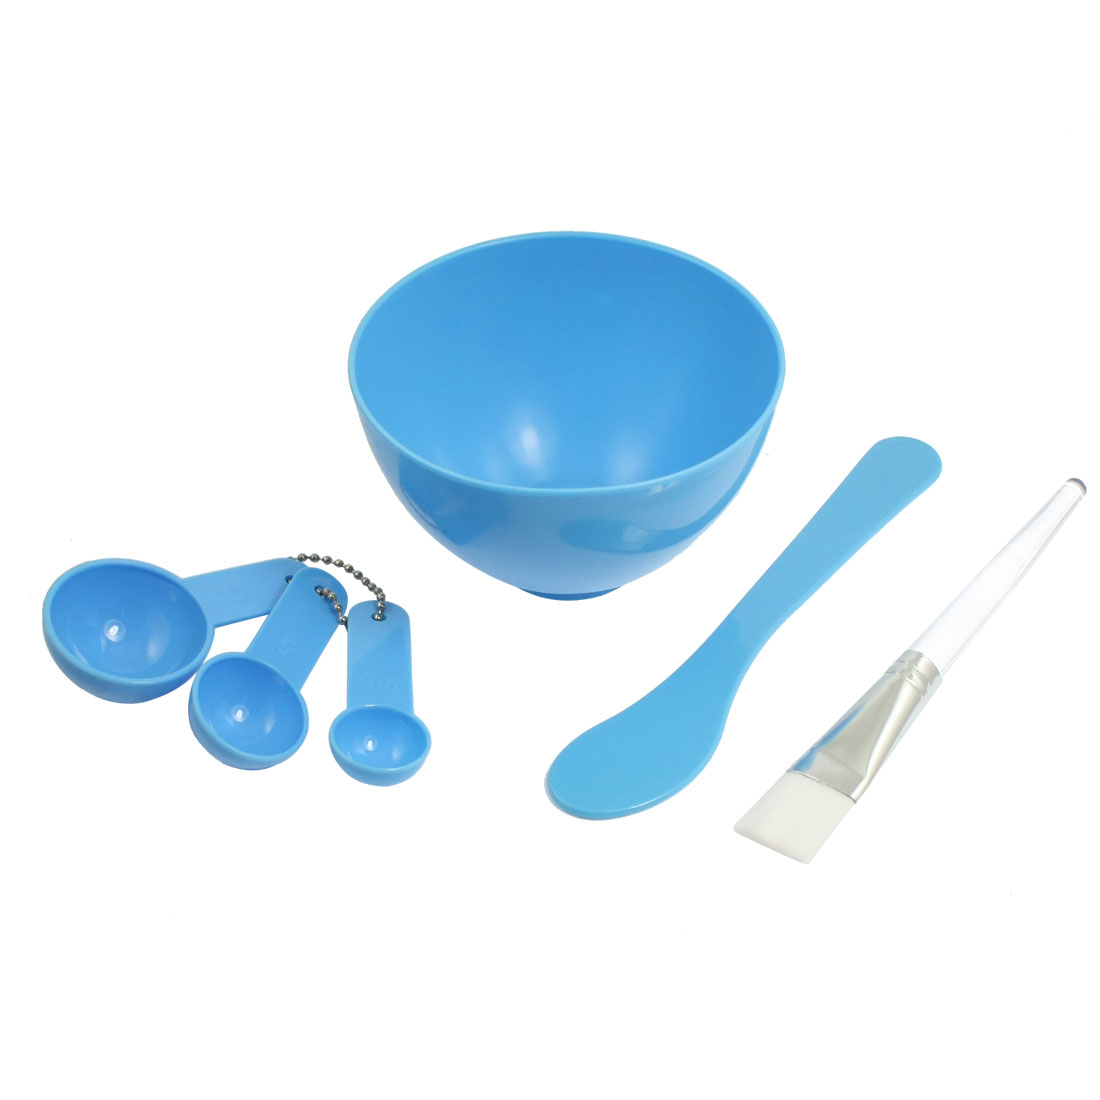 Set 4 in 1 DIY Facial Mask Mixing Bowl Stick Brush Spoon Sky Blue for Ladies